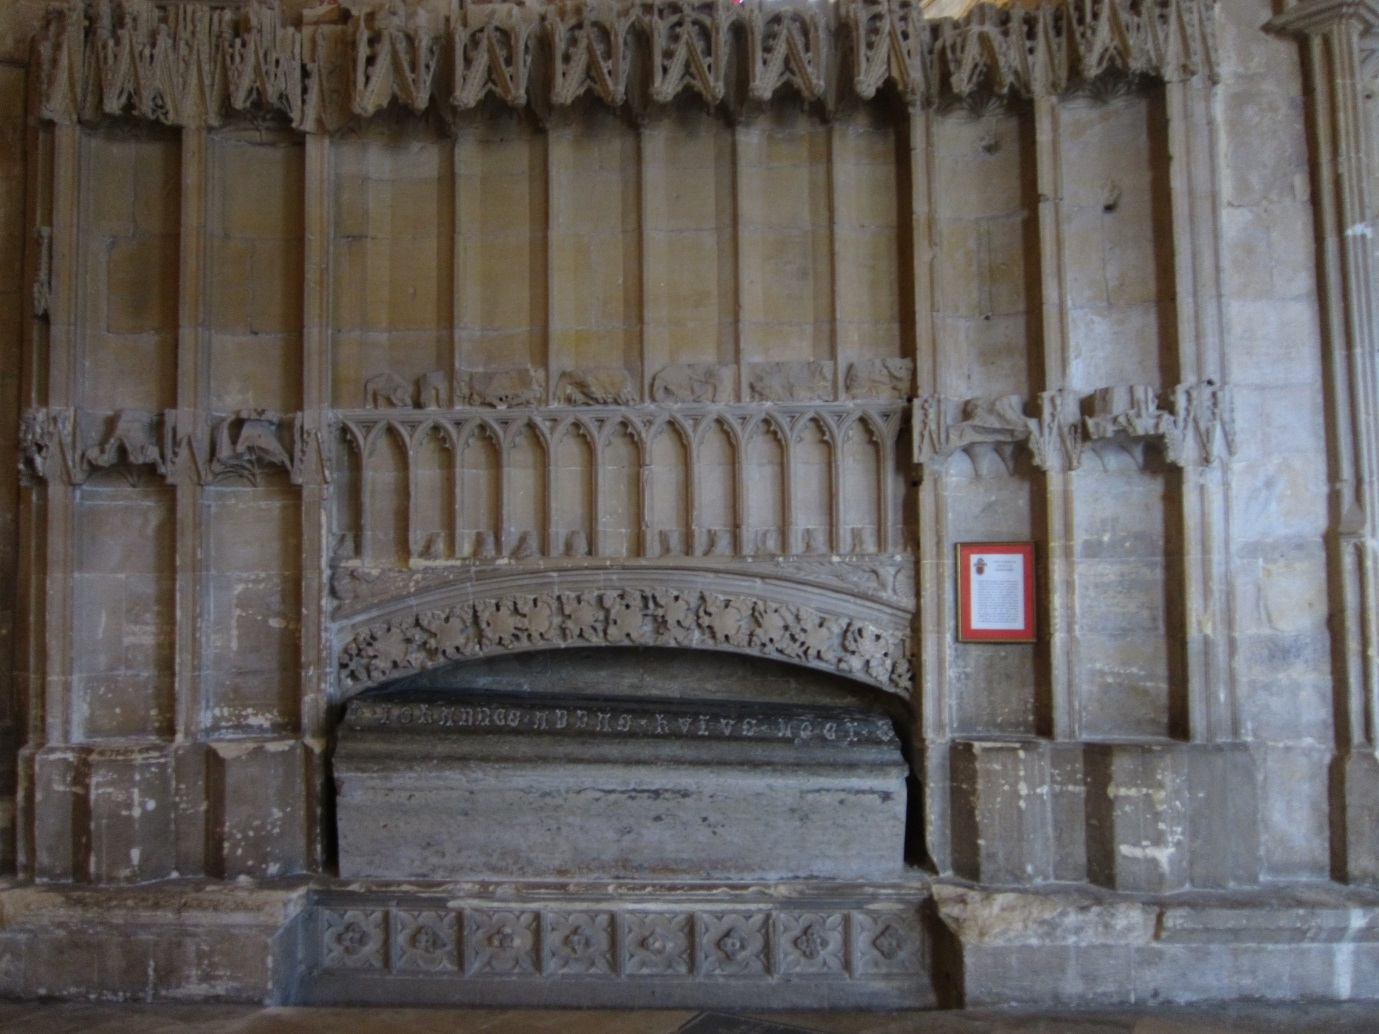 The-Chantry-of-Hugh-le-Despenser-the-coffin-is-of-a-later-Abbot-©-Tudor-Times-2015